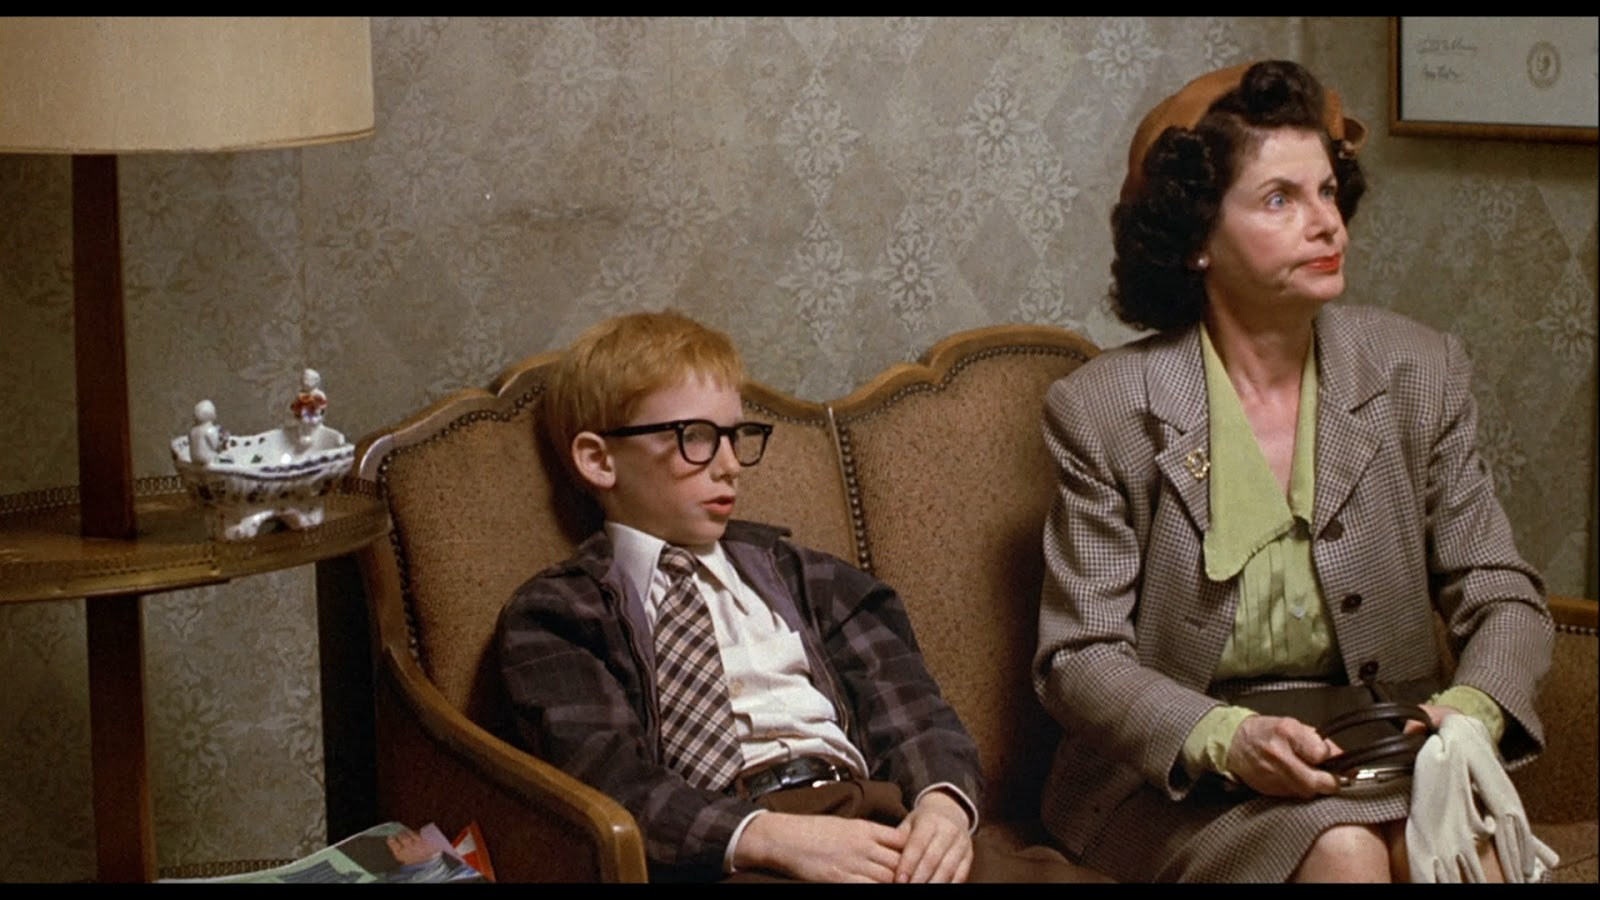 15 Things You Might Not Know About 'Annie Hall' | Mental Floss